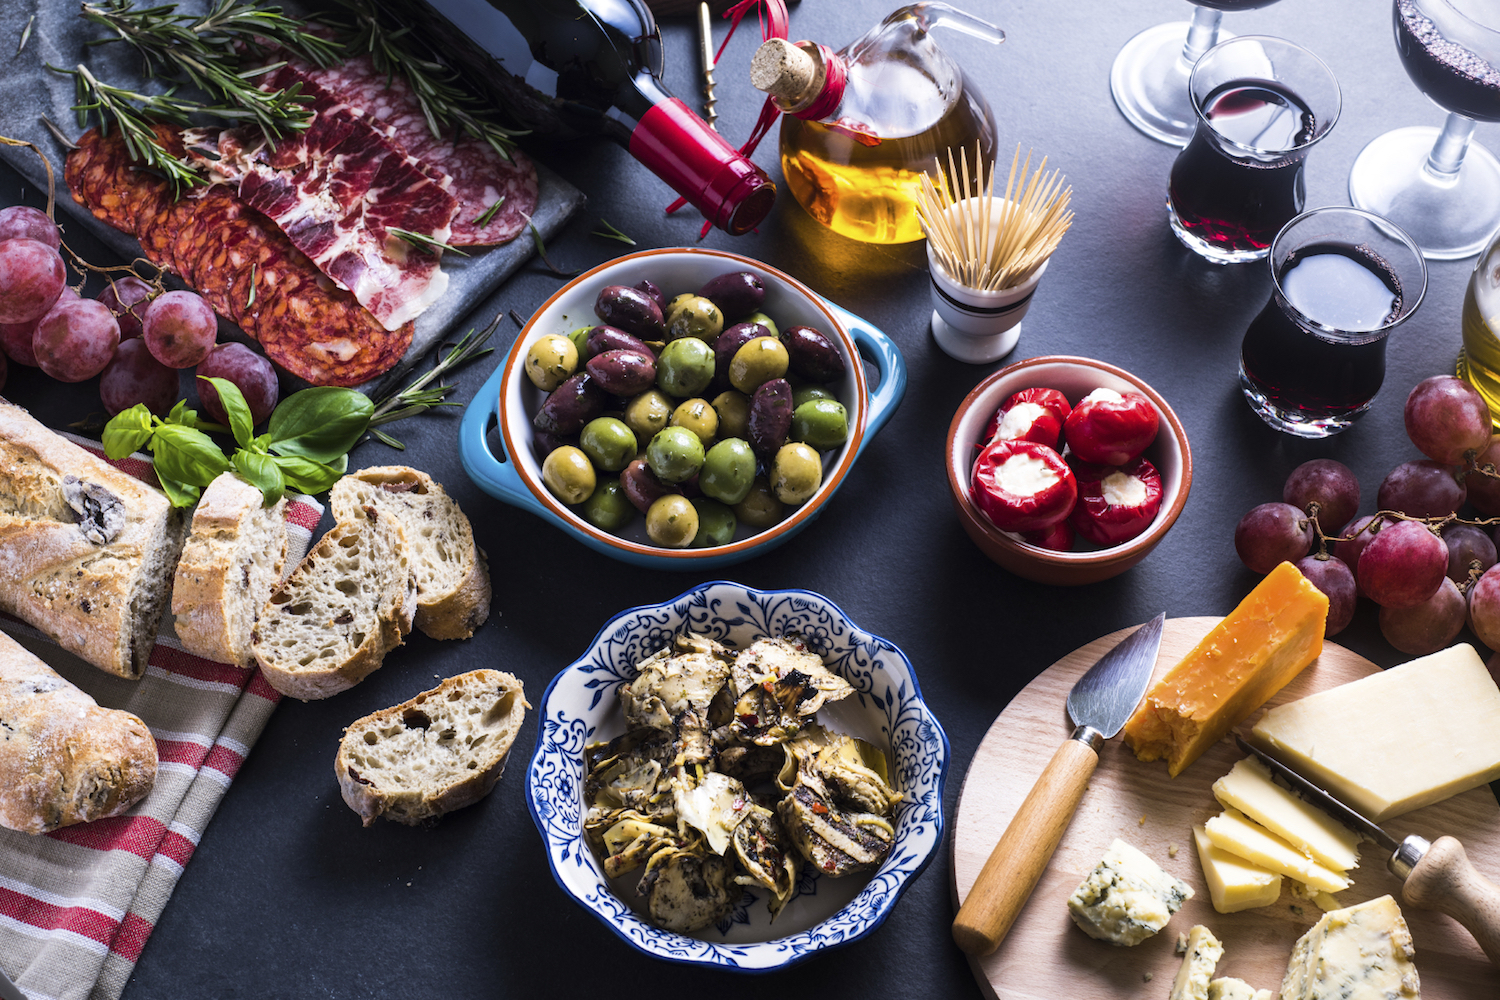 Olives, salty nuts and bland crackers add variety to your tasting menu image: merc67